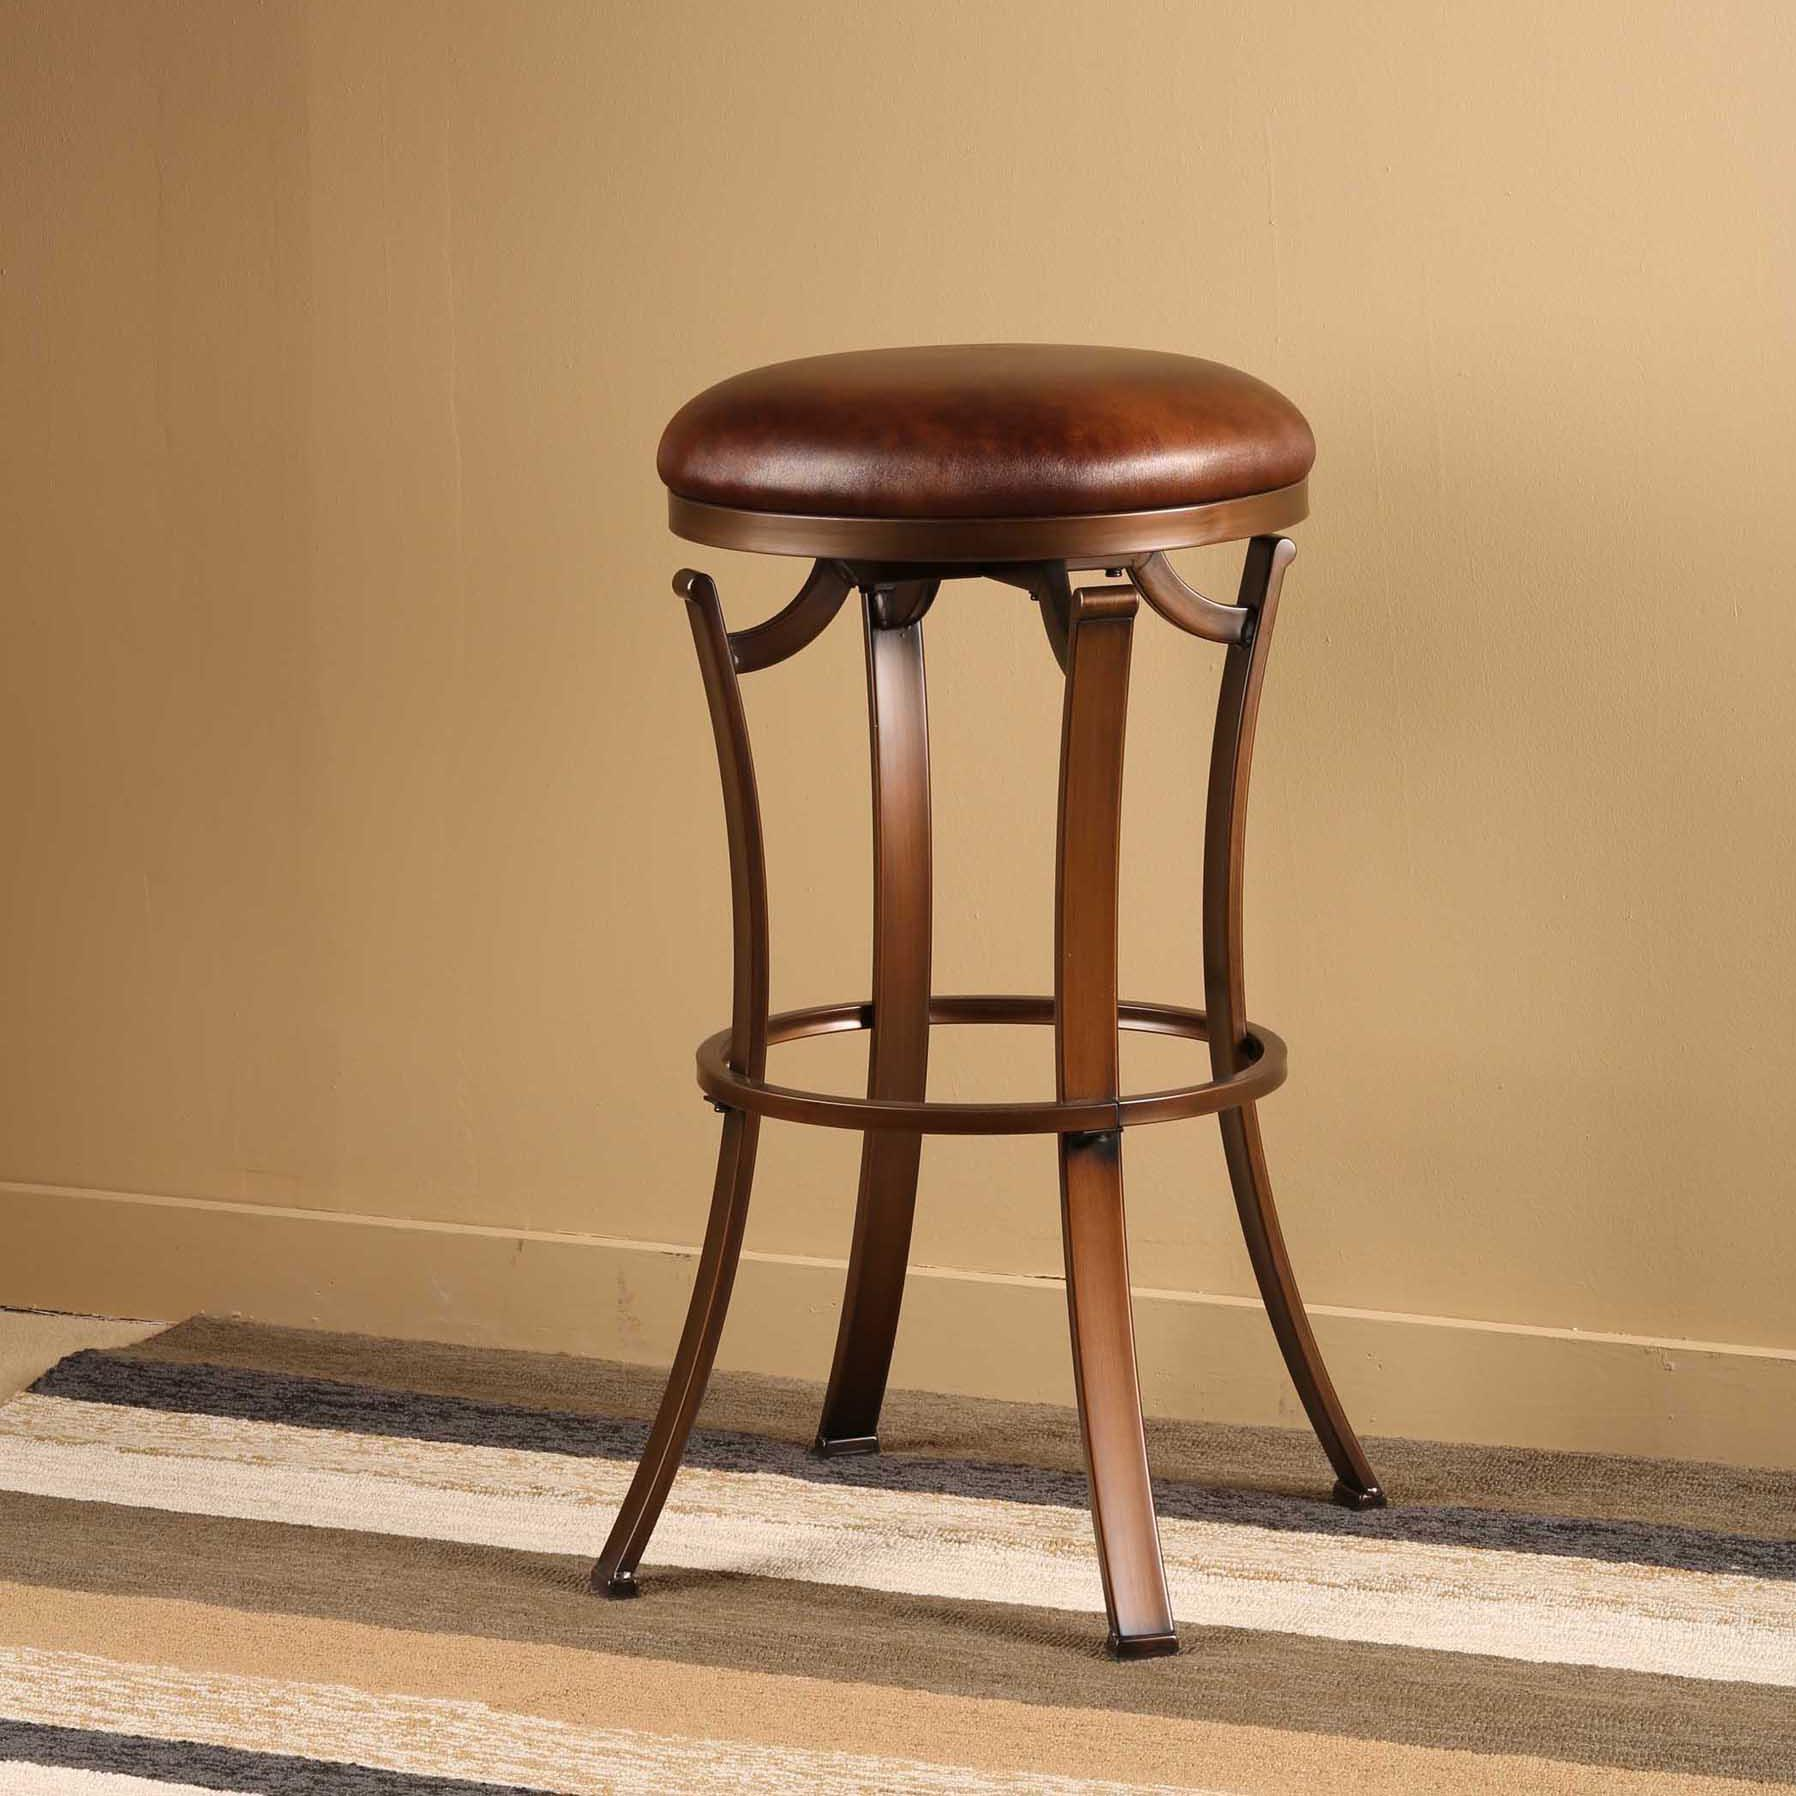 Hillsdale metal stools kelford backless bar stool w for Backless bar stools